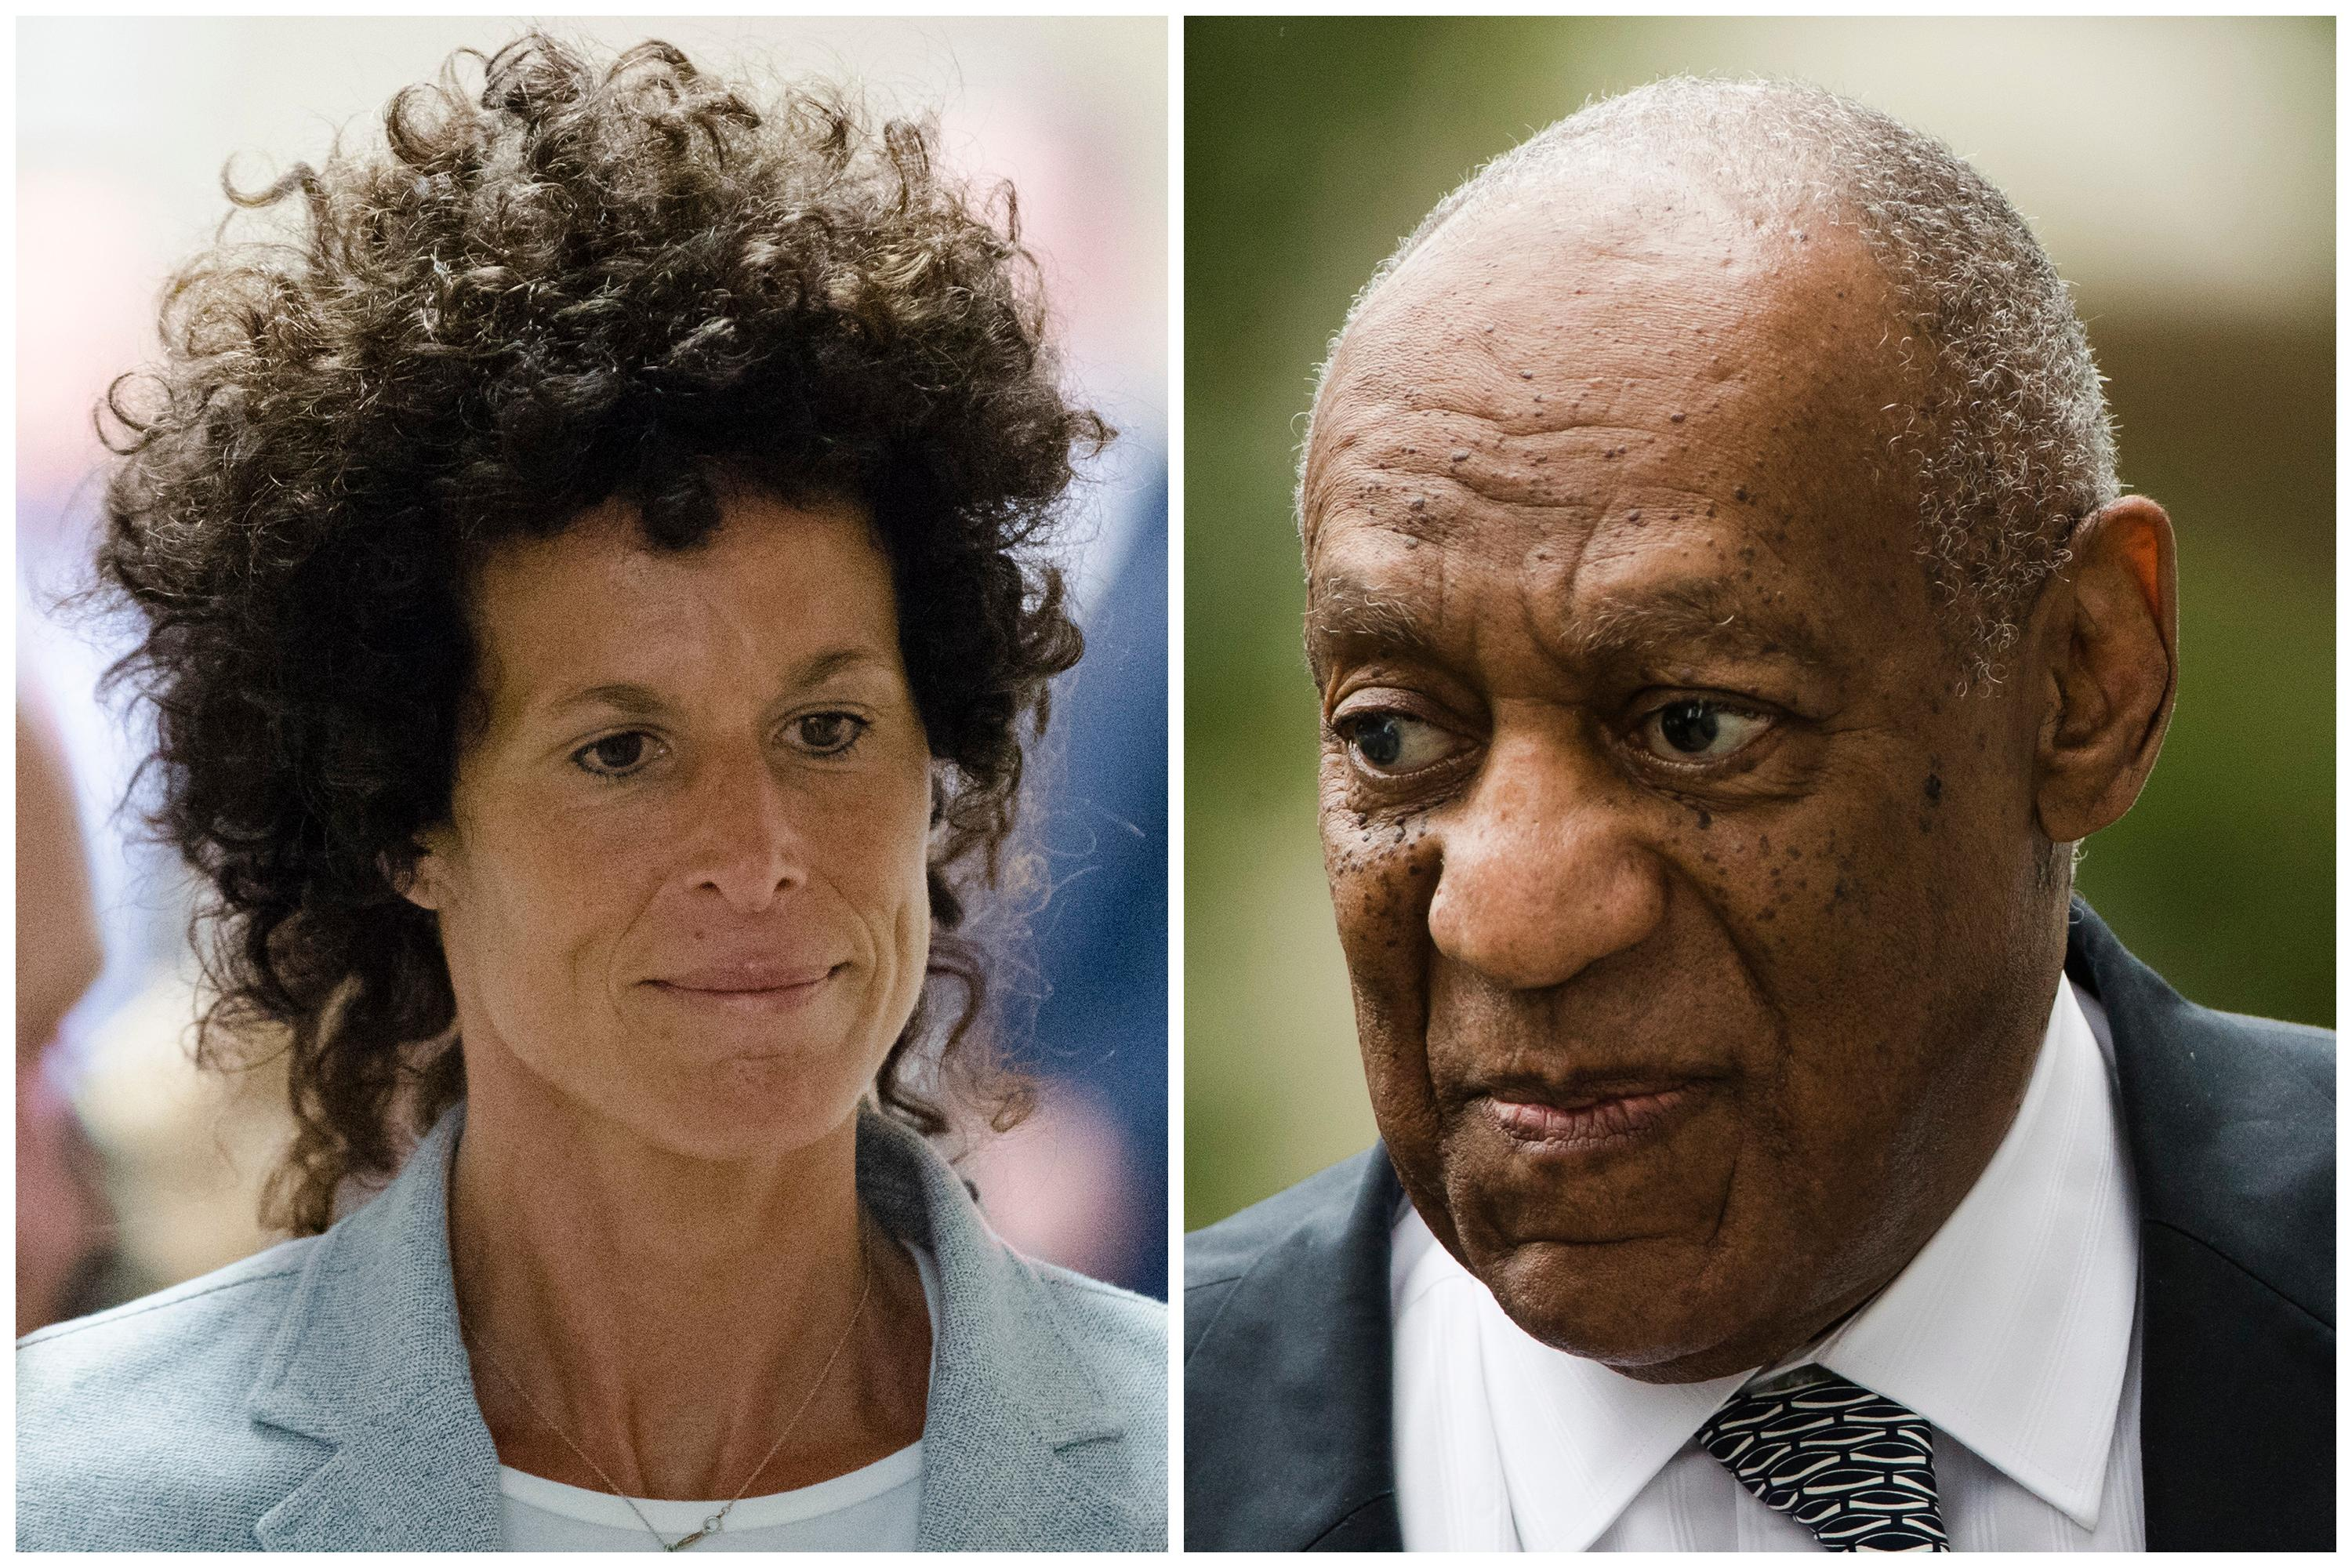 FILE – This photo combination shows Andrea Constand, left, walking to the courtroom during Bill Cosby's sexual assault trial on June 6, 2017, at the Montgomery County Courthouse in Norristown, Pa.; and Bill Cosby, right, arriving for his sexual assault trial on June 16, 2017, at the Montgomery County Courthouse in Norristown, Pa. Former acting Pennsylvania Attorney General Bruce L. Castor, who declined to press sexual-assault charges against Cosby in 2005, has filed the beginnings of a lawsuit against Cosby's accuser in Philadelphia. An attorney for Castor says the personal-injury complaint will claim  Constand sued Castor for defamation in 2015 so he would lose the prosecutor's race. The winner, Kevin Steele, had criticized Castor's handling of the Cosby case. (AP Photo/Matt Rourke, File)